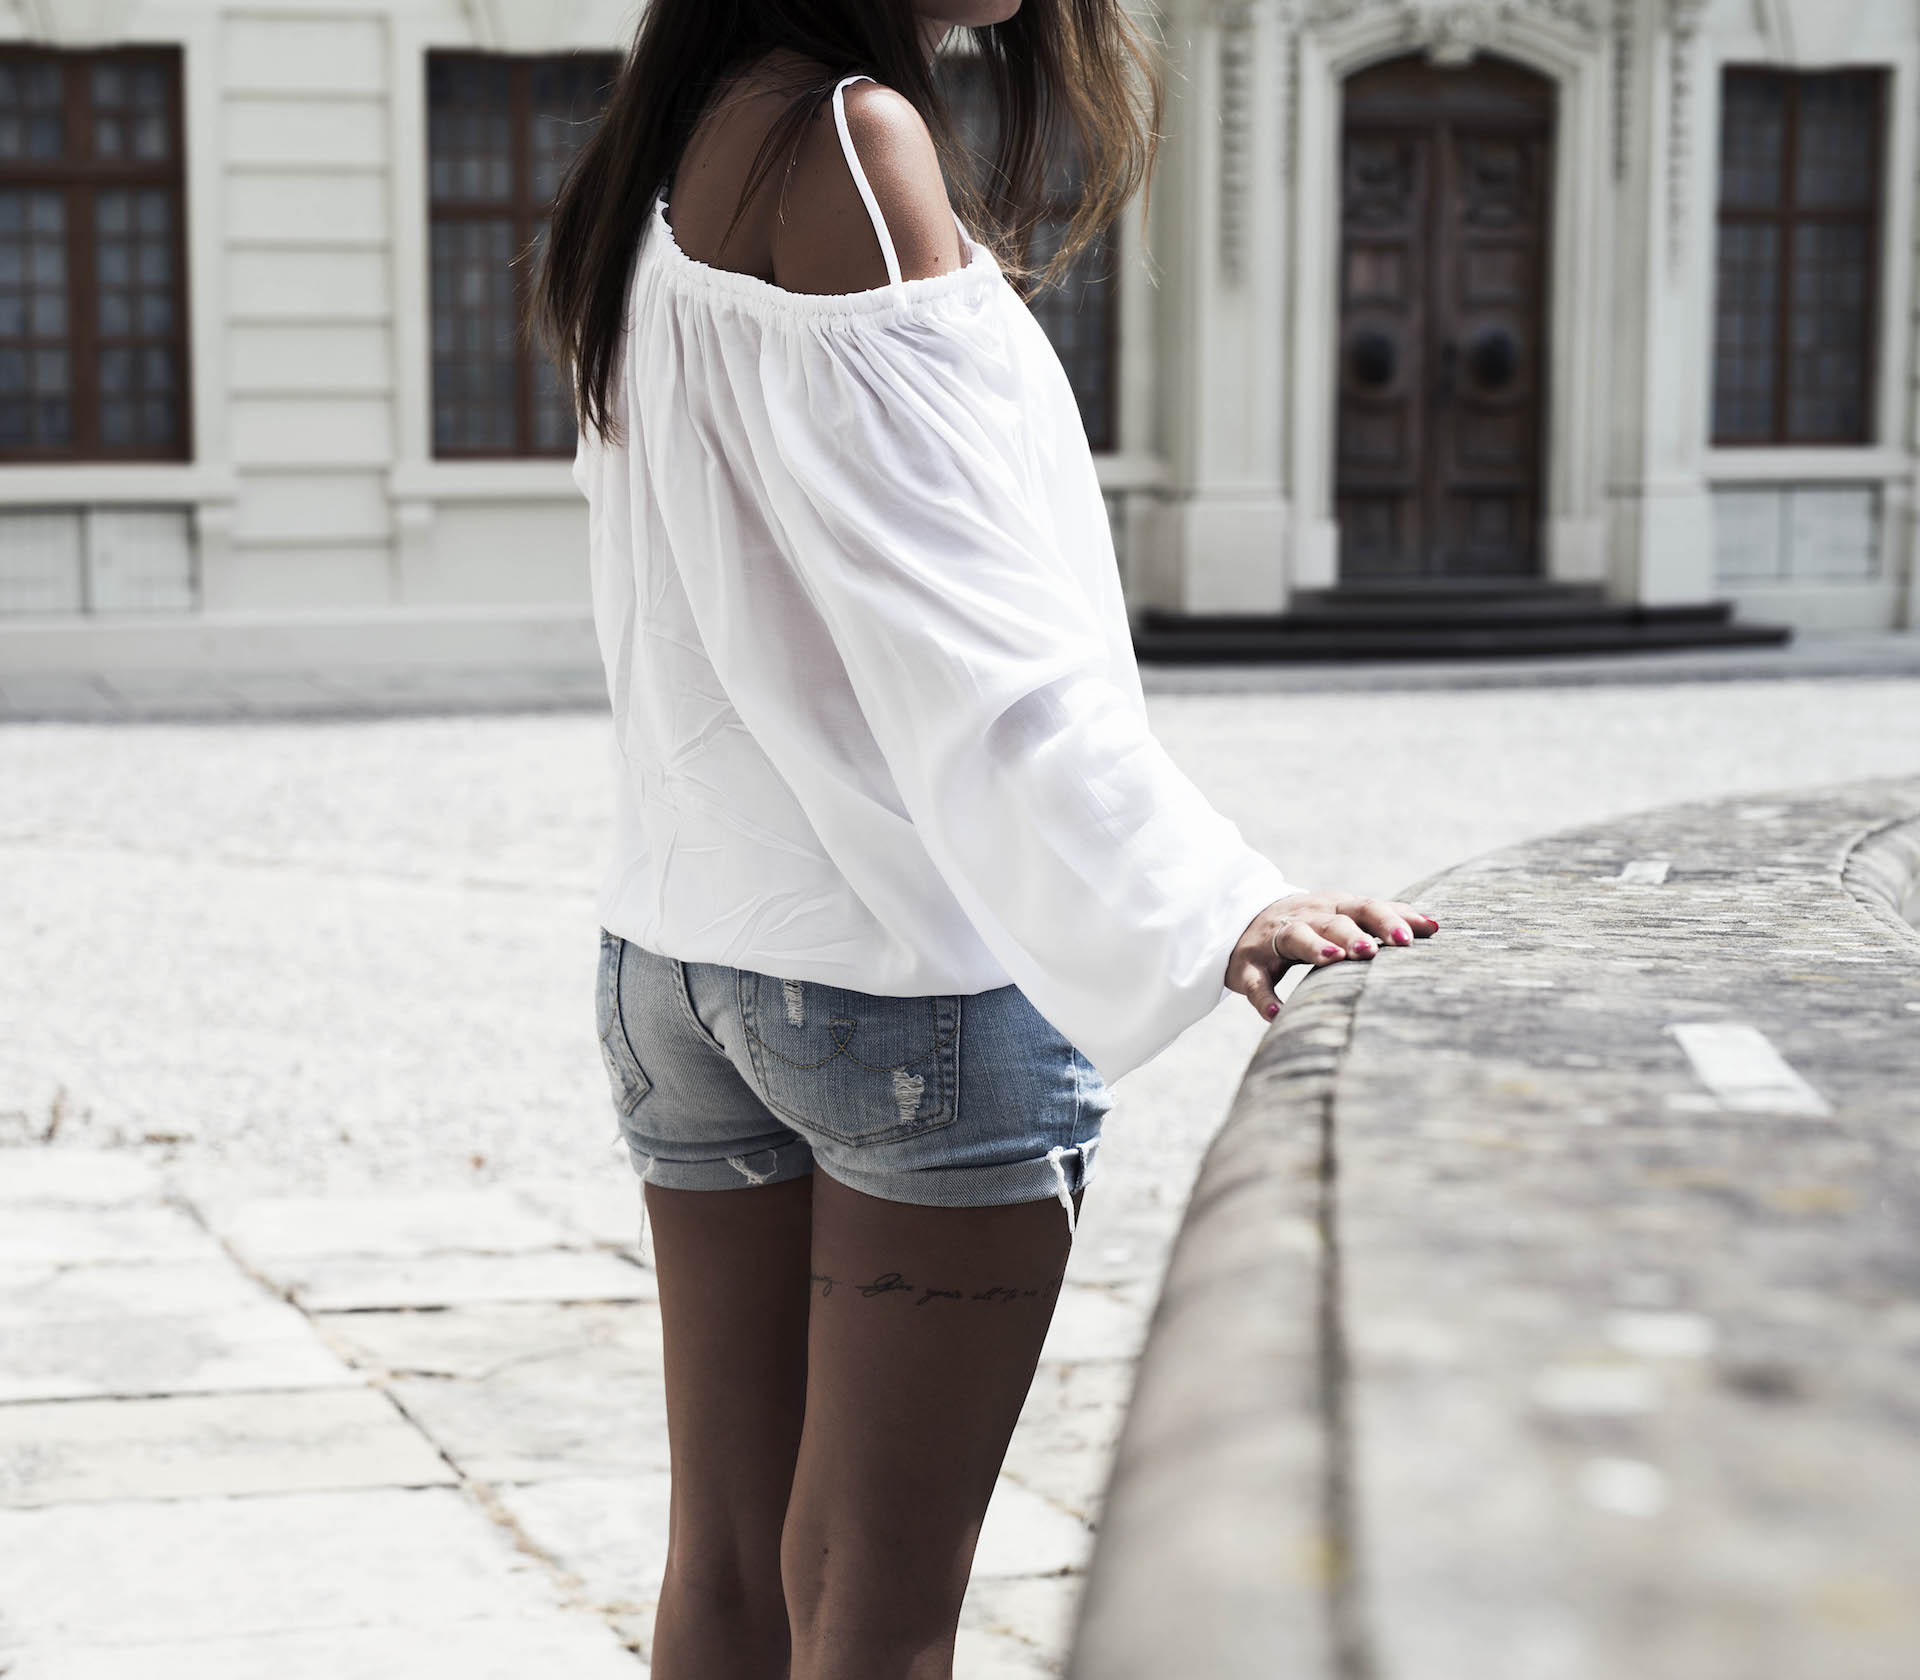 Sommeroutfit-Ludwigsburg-Shorts-Bluse